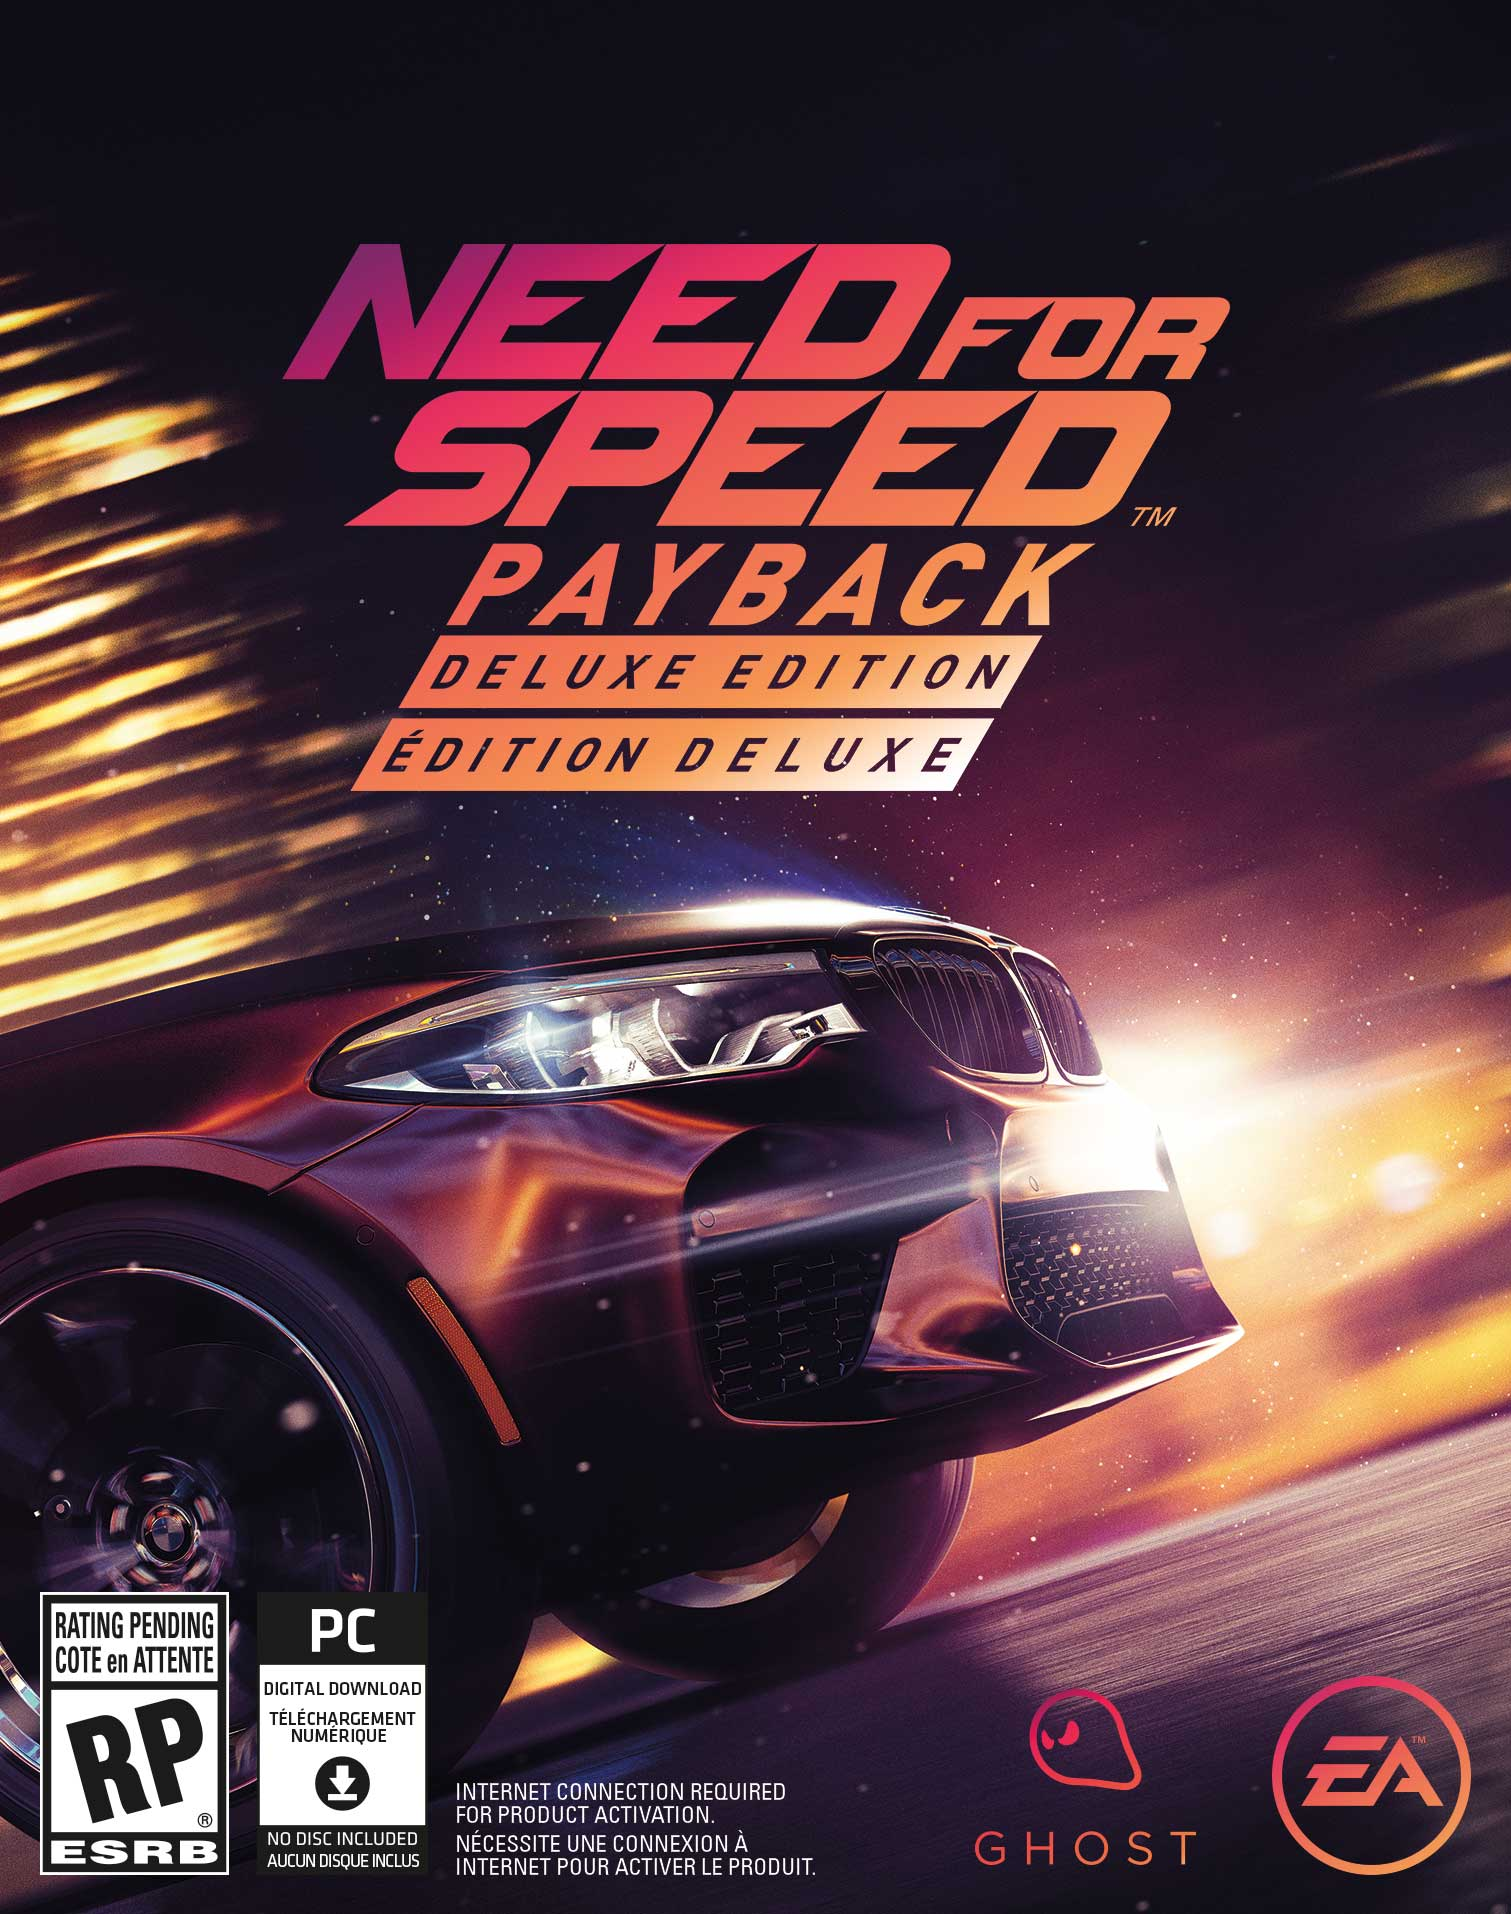 https://img5.downloadha.com/hosein/Game/November%202017/02/Need-for-Speed-Payback-pc-cover-large.jpg